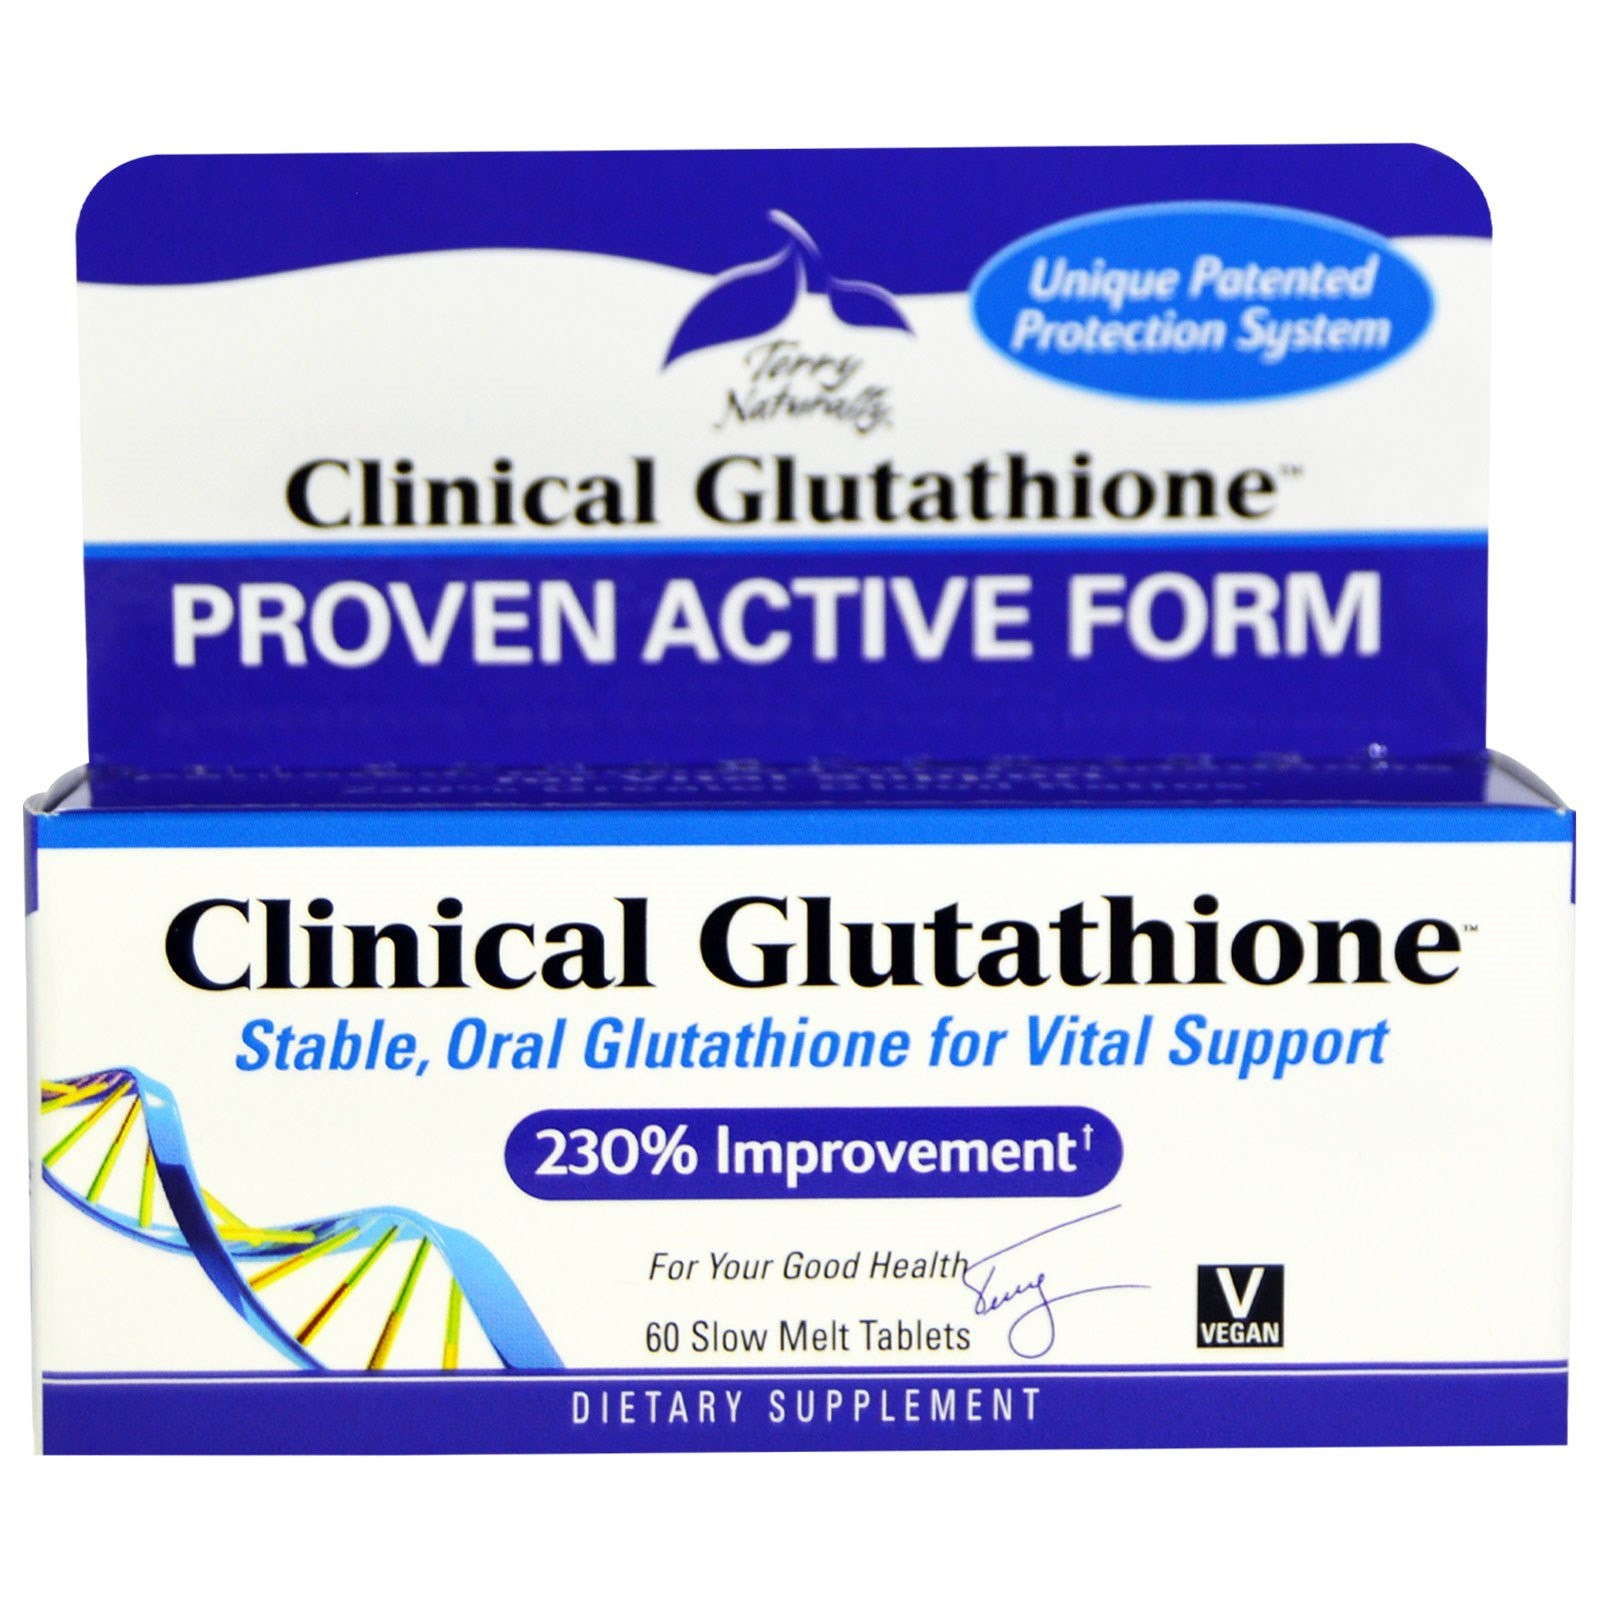 Terry Naturally - Clinical Glutathione - 60 Slow-Melt Tabs